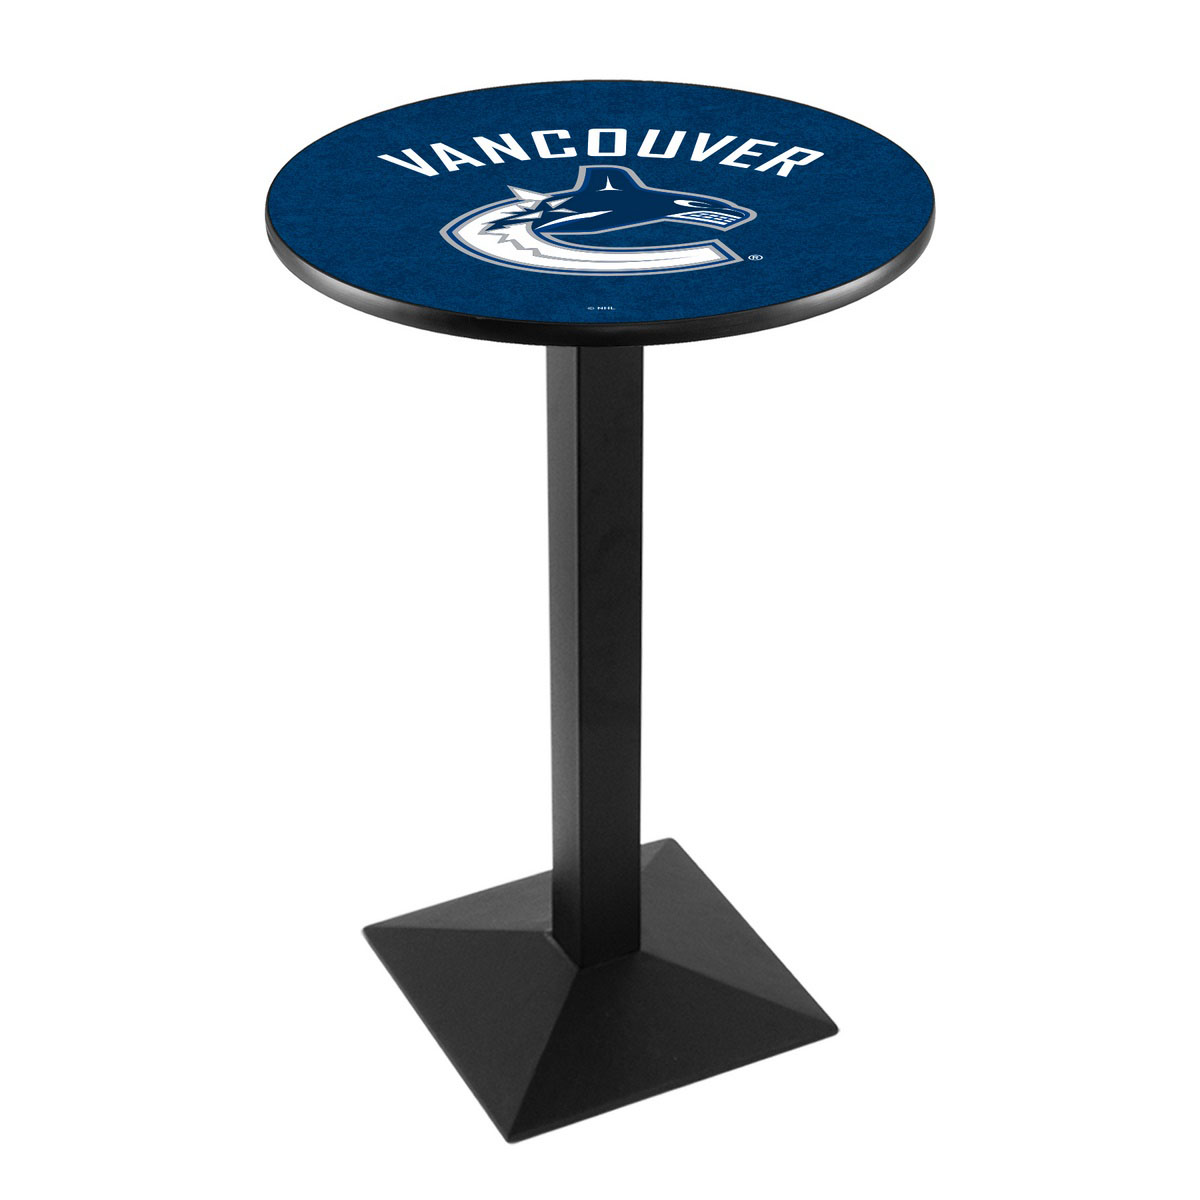 New Vancouver Canucks Logo Pub Bar Table Square Stand Product Photo